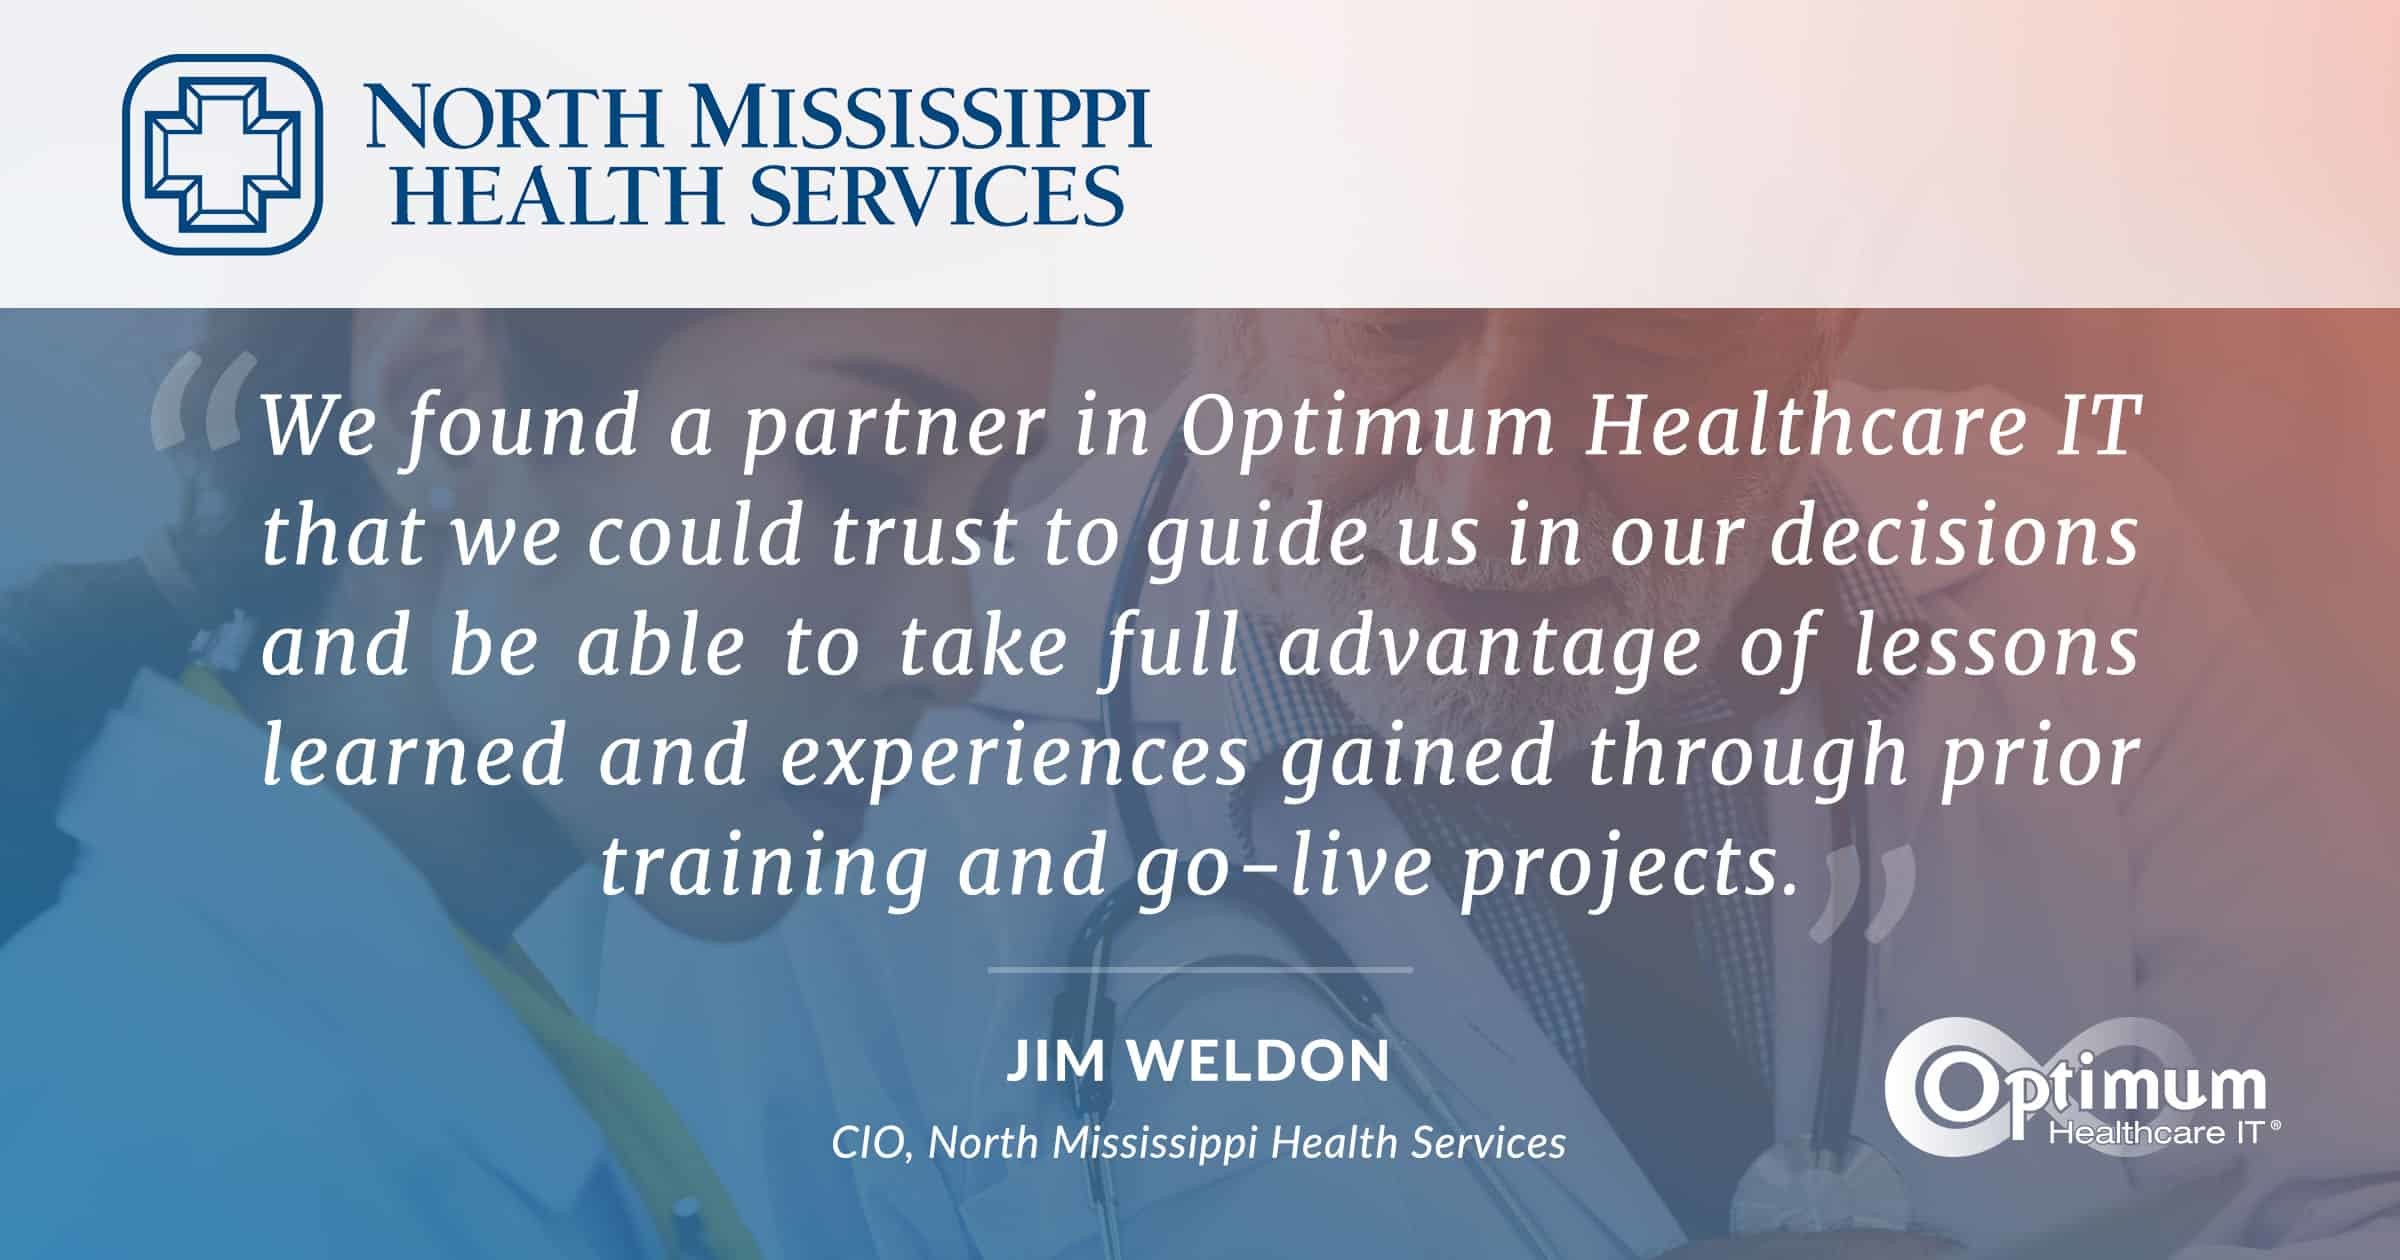 press-featured-client-north-mississippi-health-services-featured